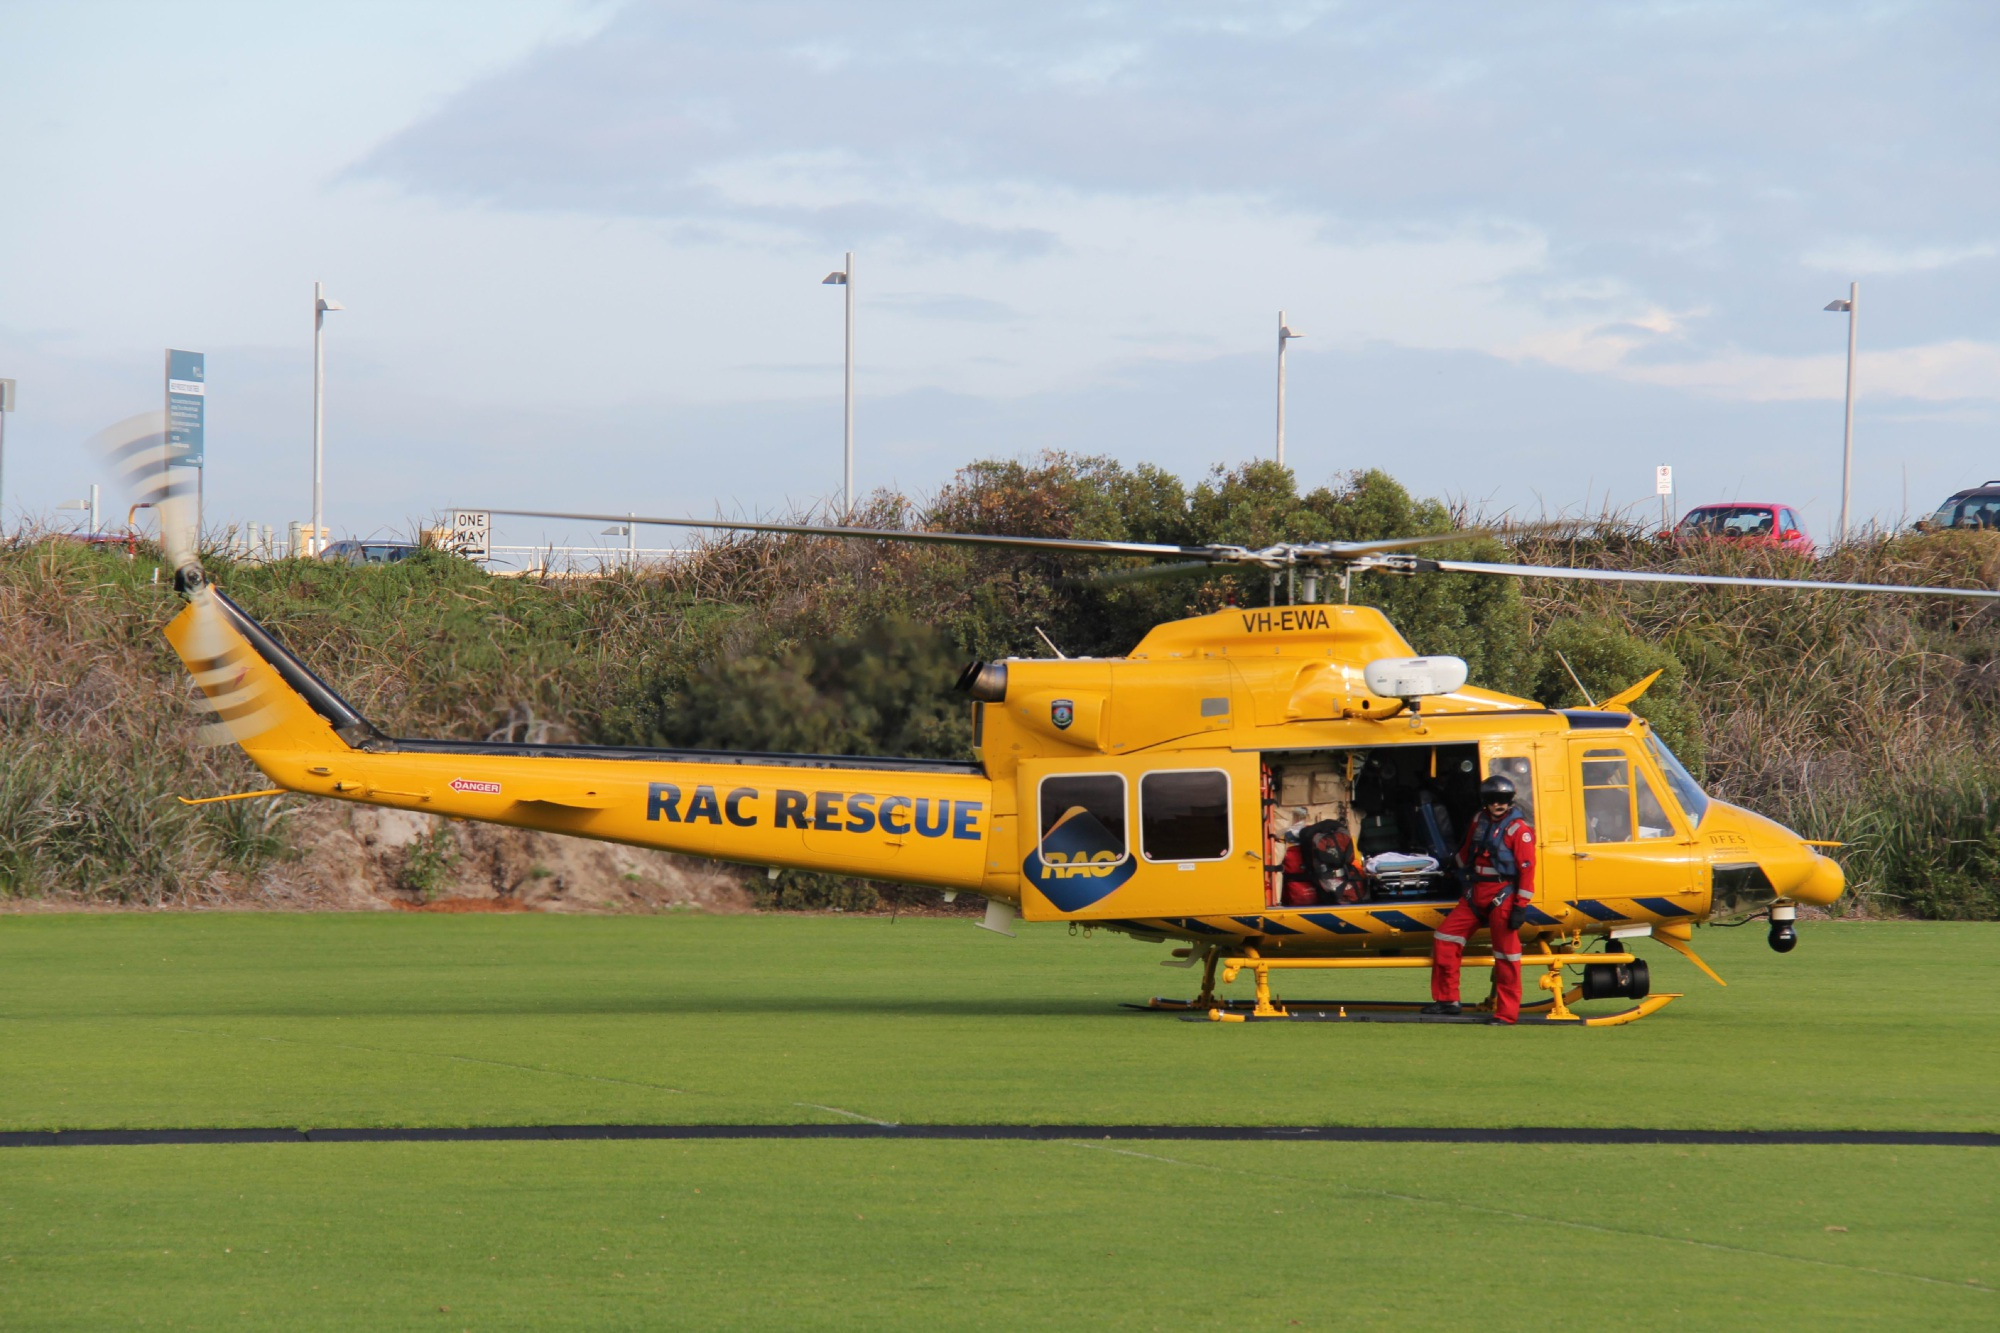 Rescue helicopter farce: Labor blasts Government over heavy choppers